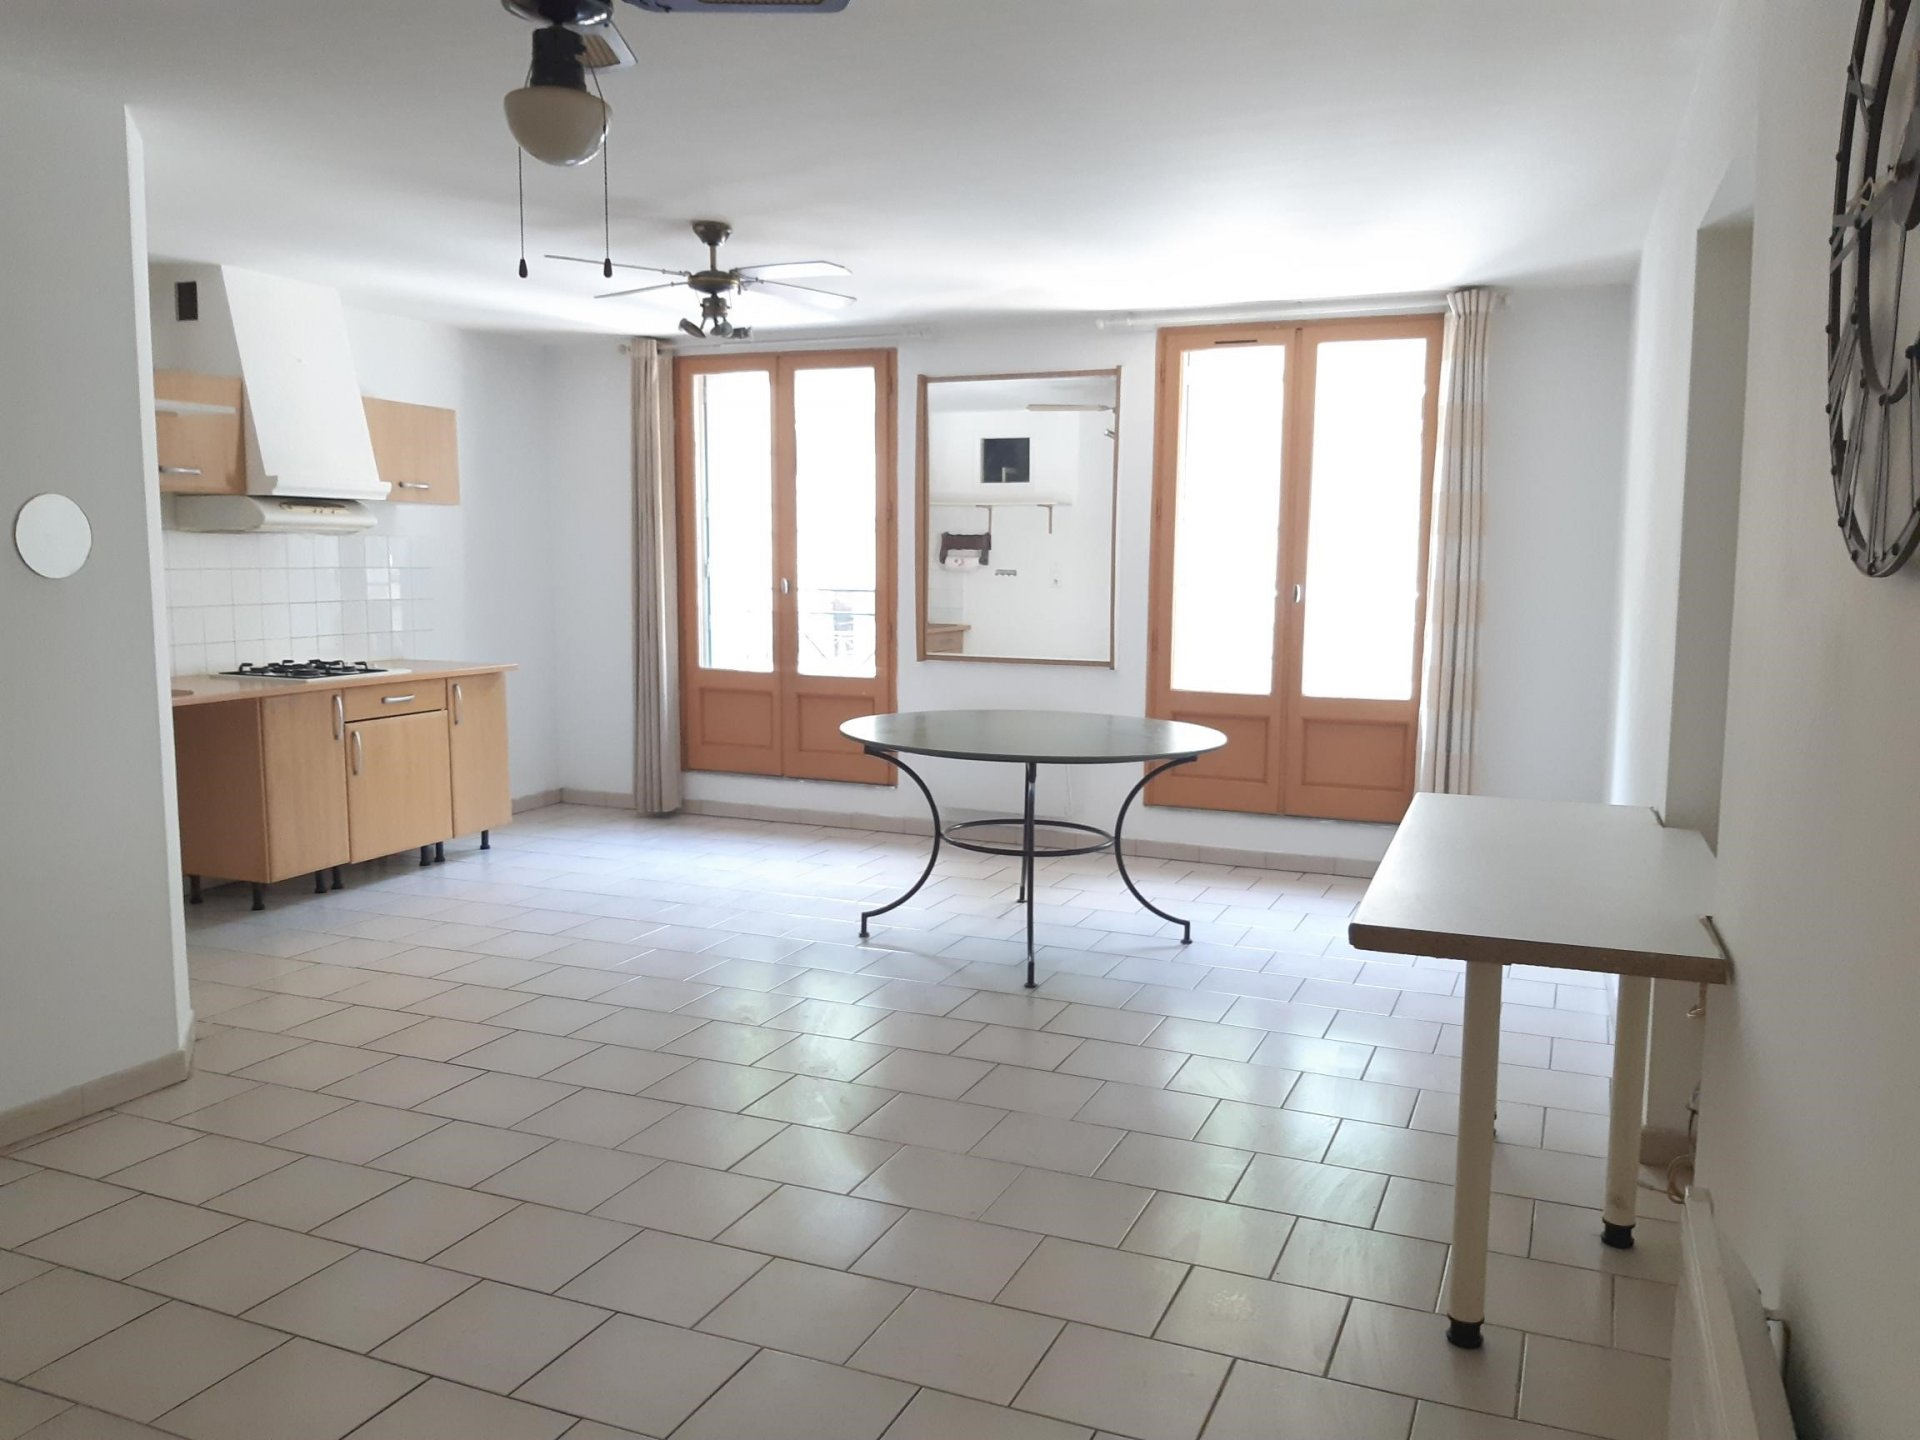 Location Appartement TARASCON Mandat : 3519